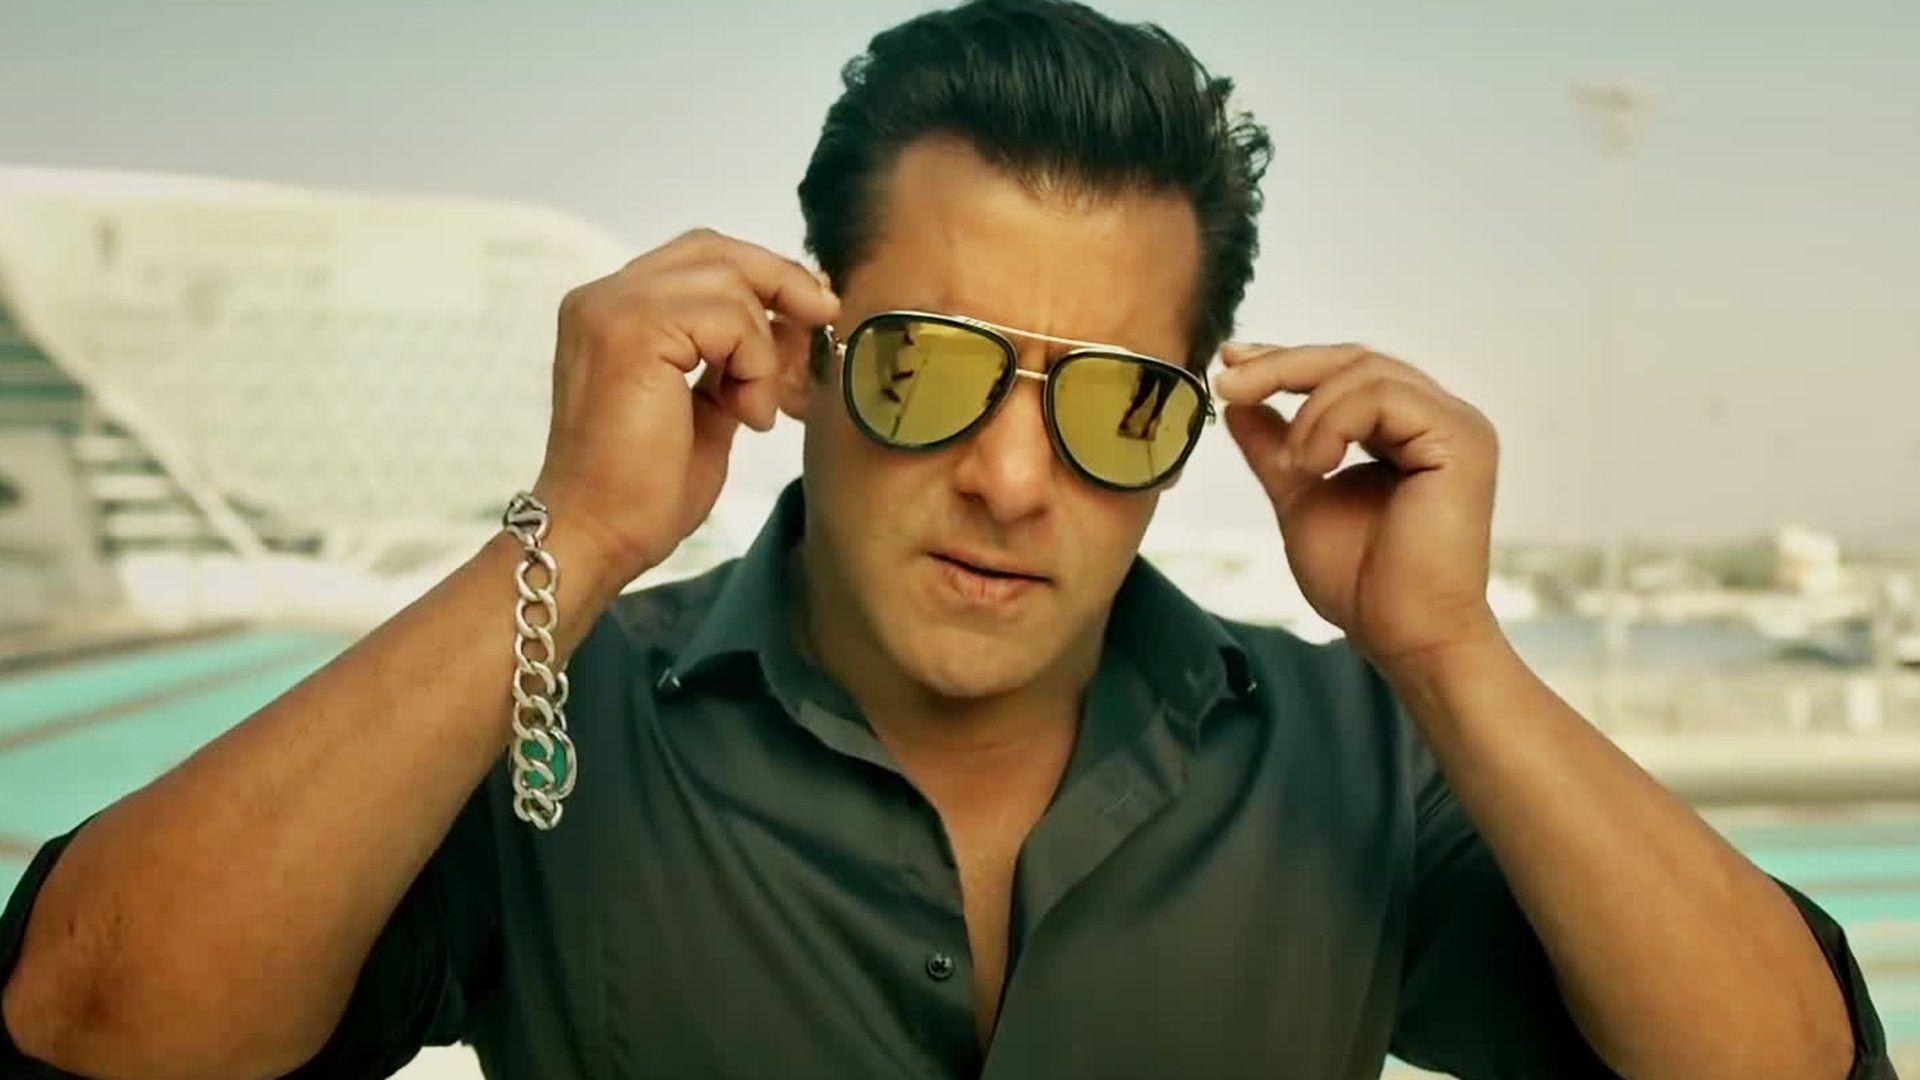 Salman Khan Wallpapers HD Backgrounds, Image, Pics, Photos Free